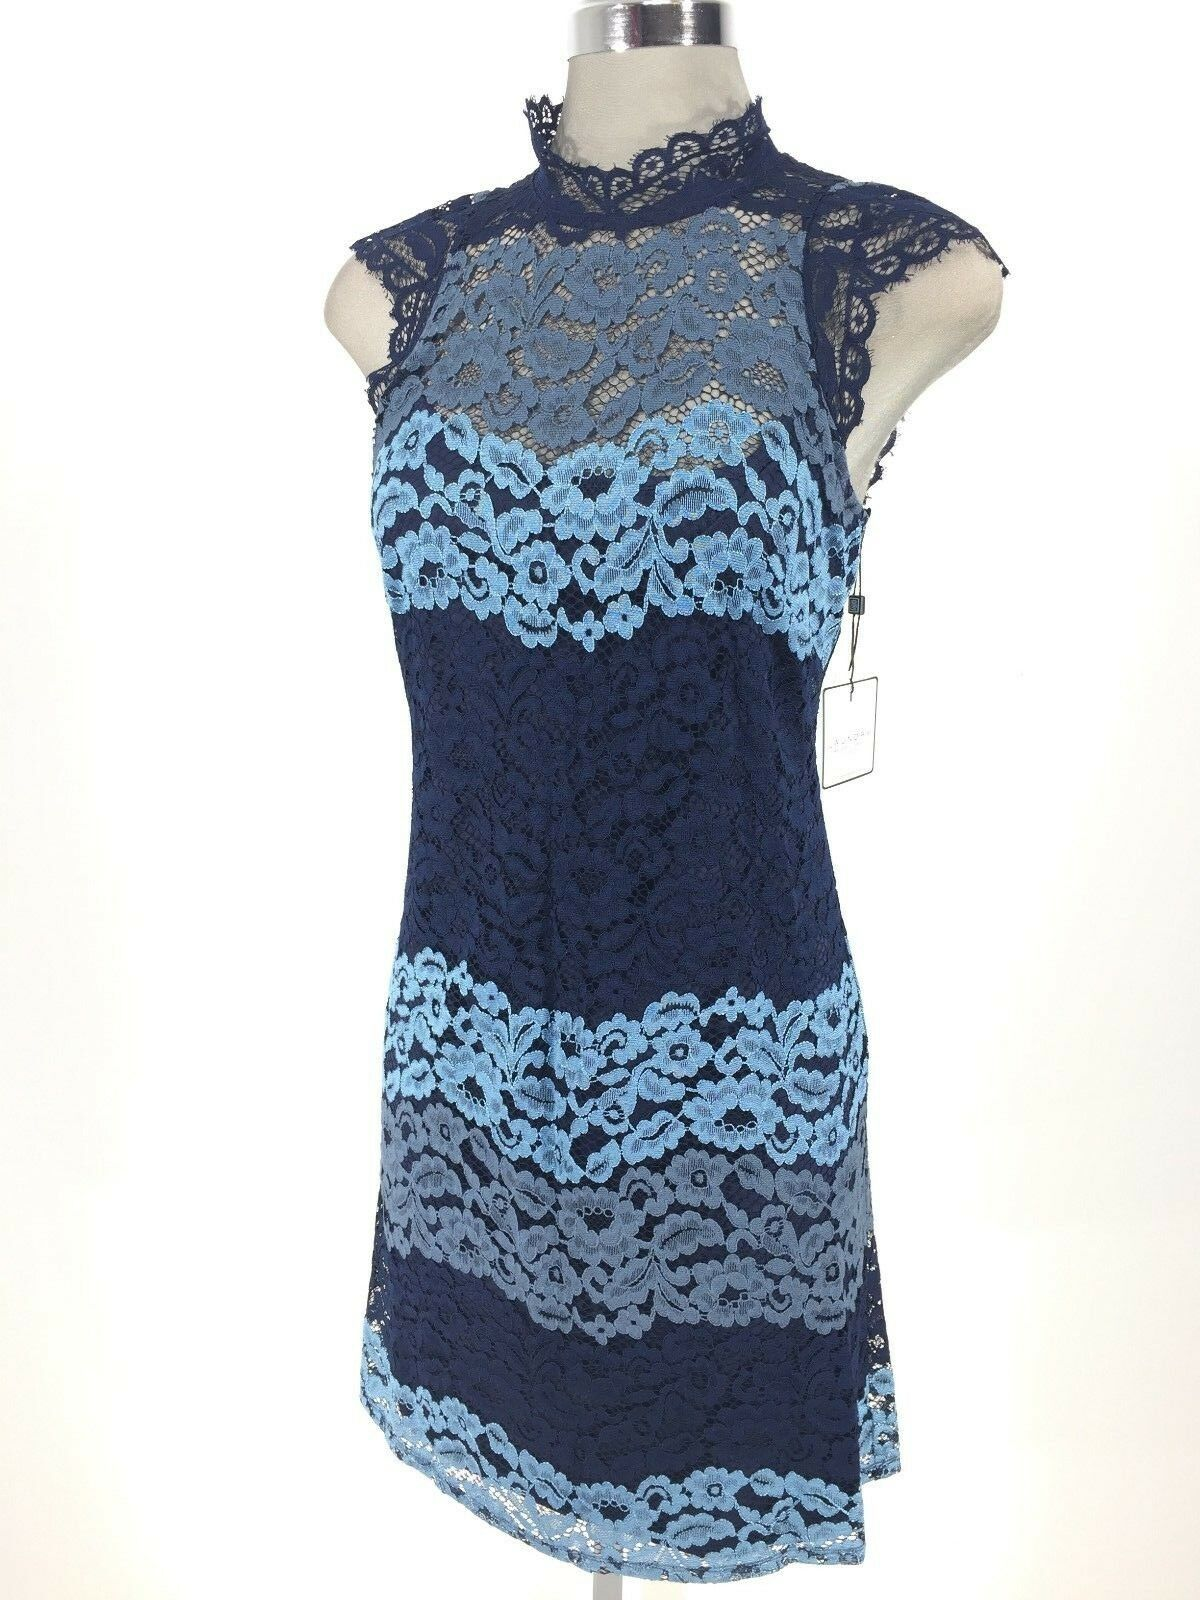 LAUNDRY Brand New NWT Exquisite Denim bluee Beautiful Lace Dress size 0 4 6 8